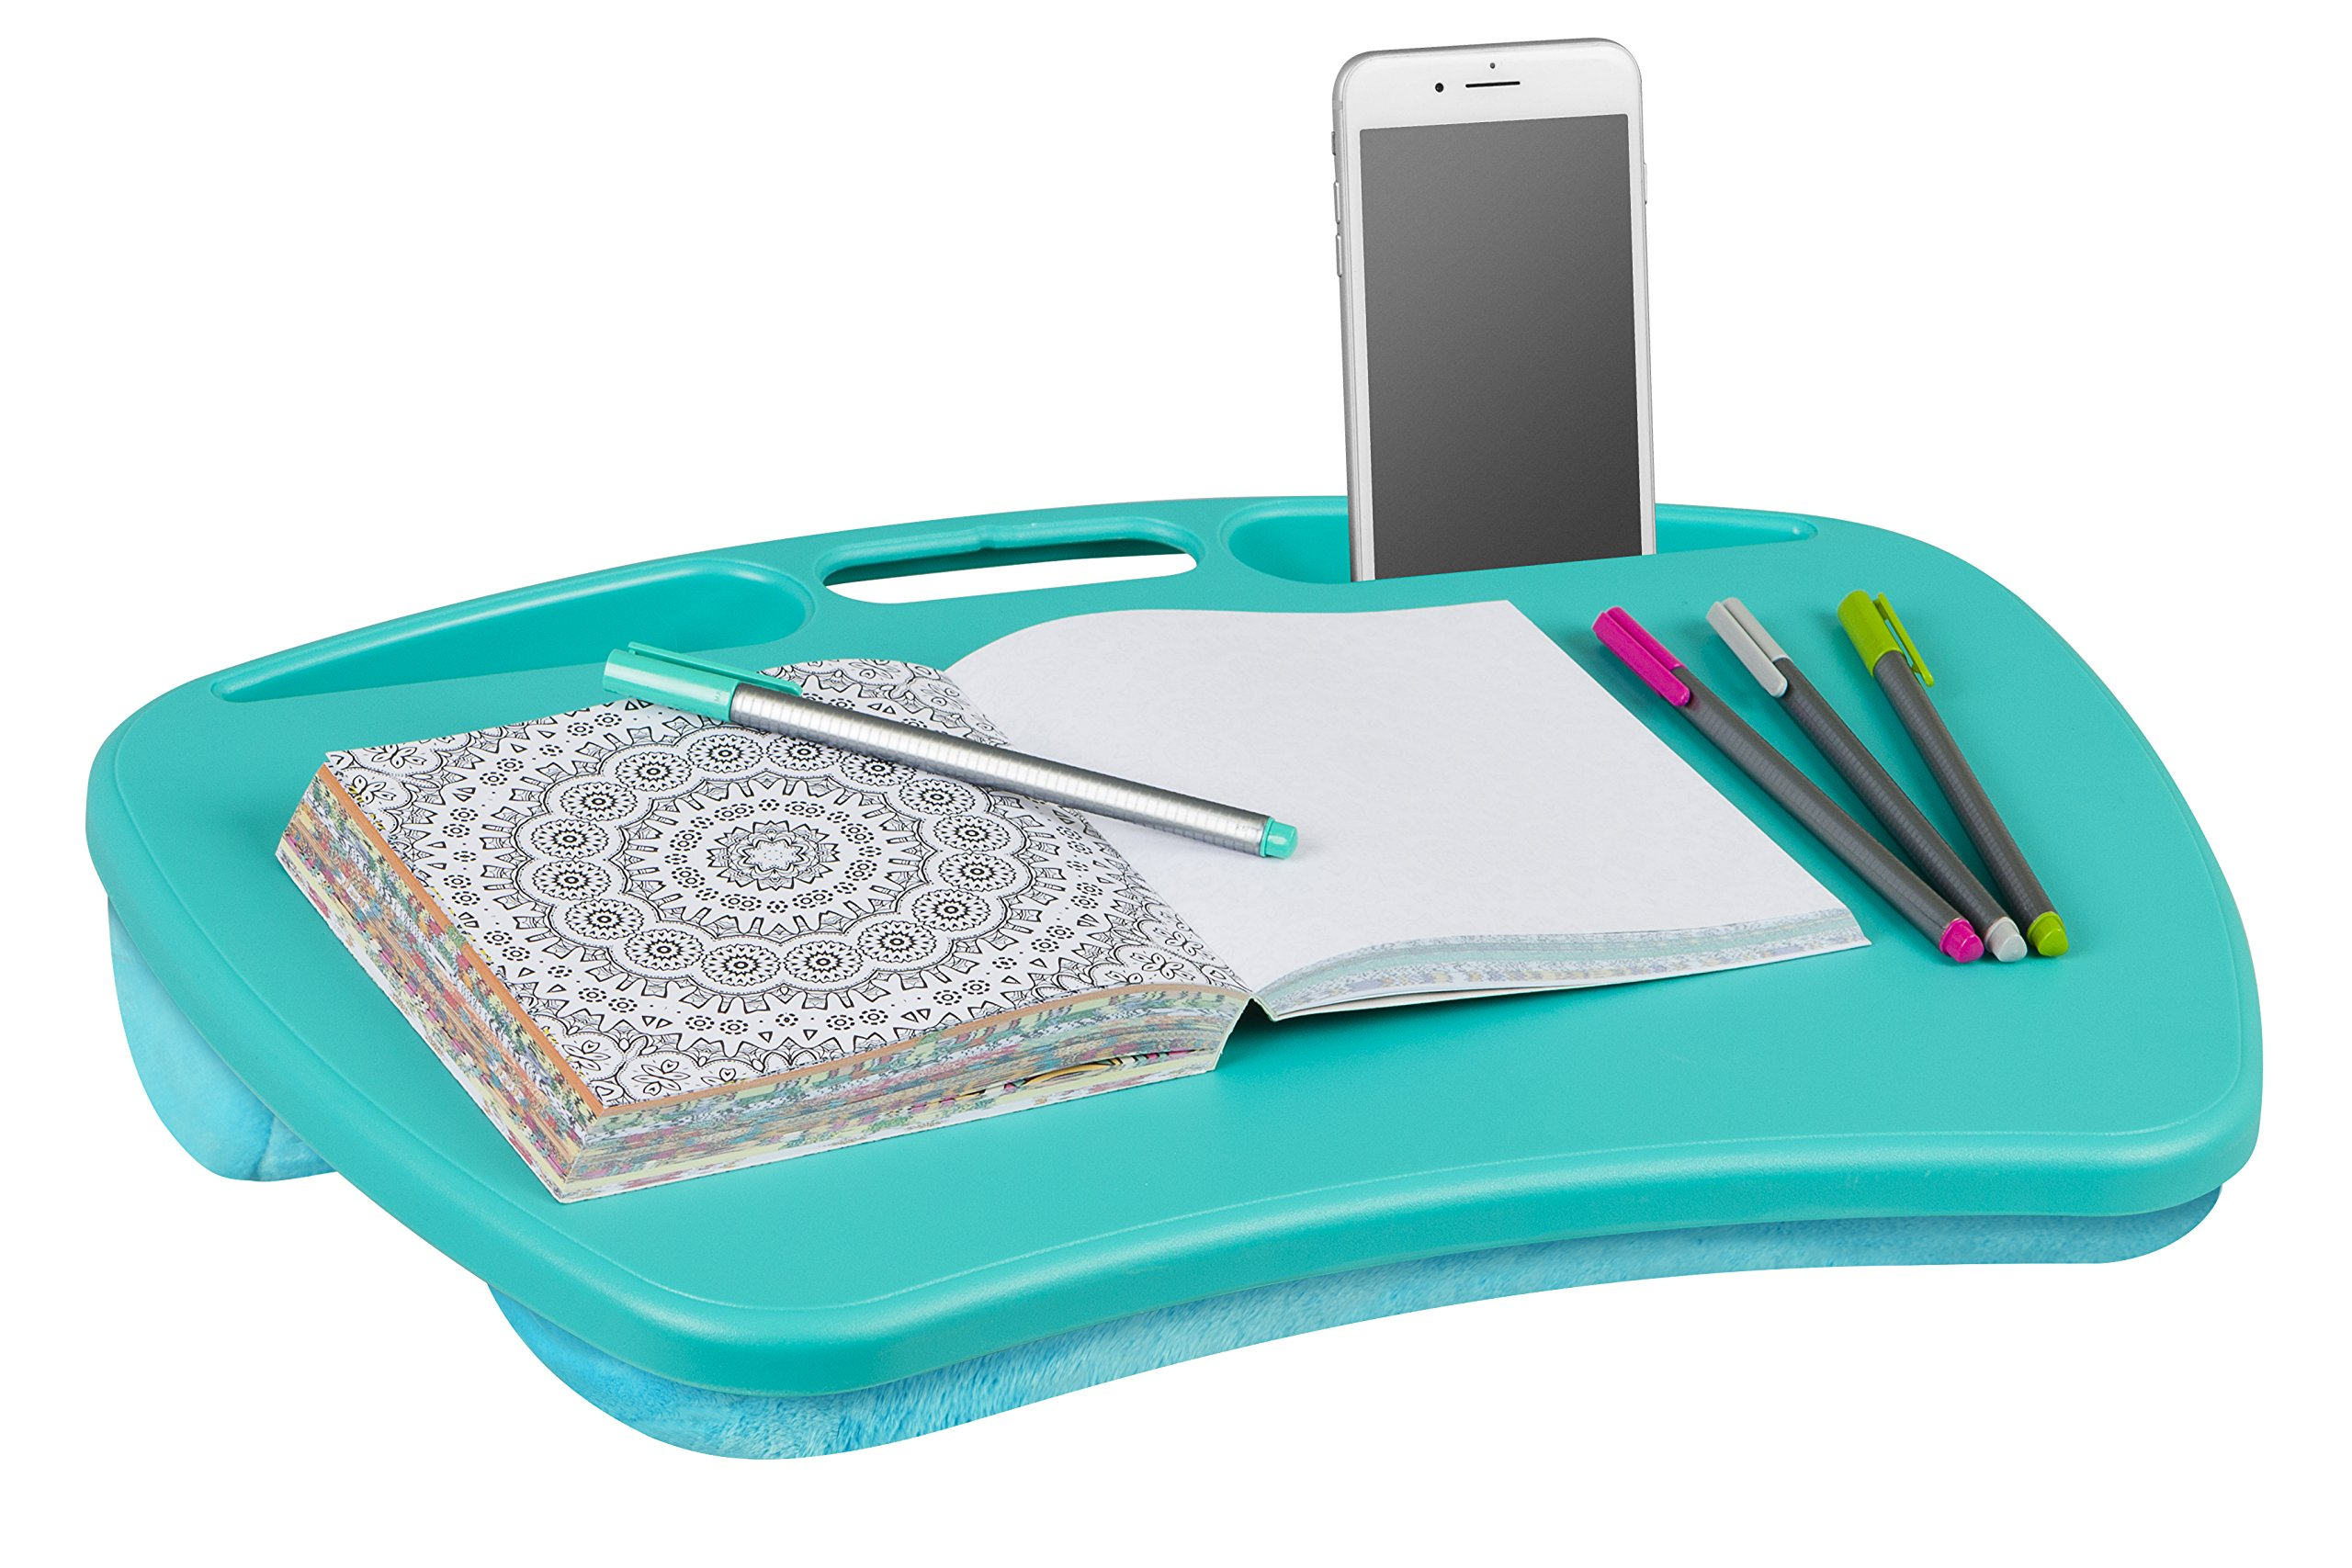 LapGear MyDesk Lap Desk - Turquoise - Fits up to 15.6 Inch laptops - Style No. 45349 by LapGear